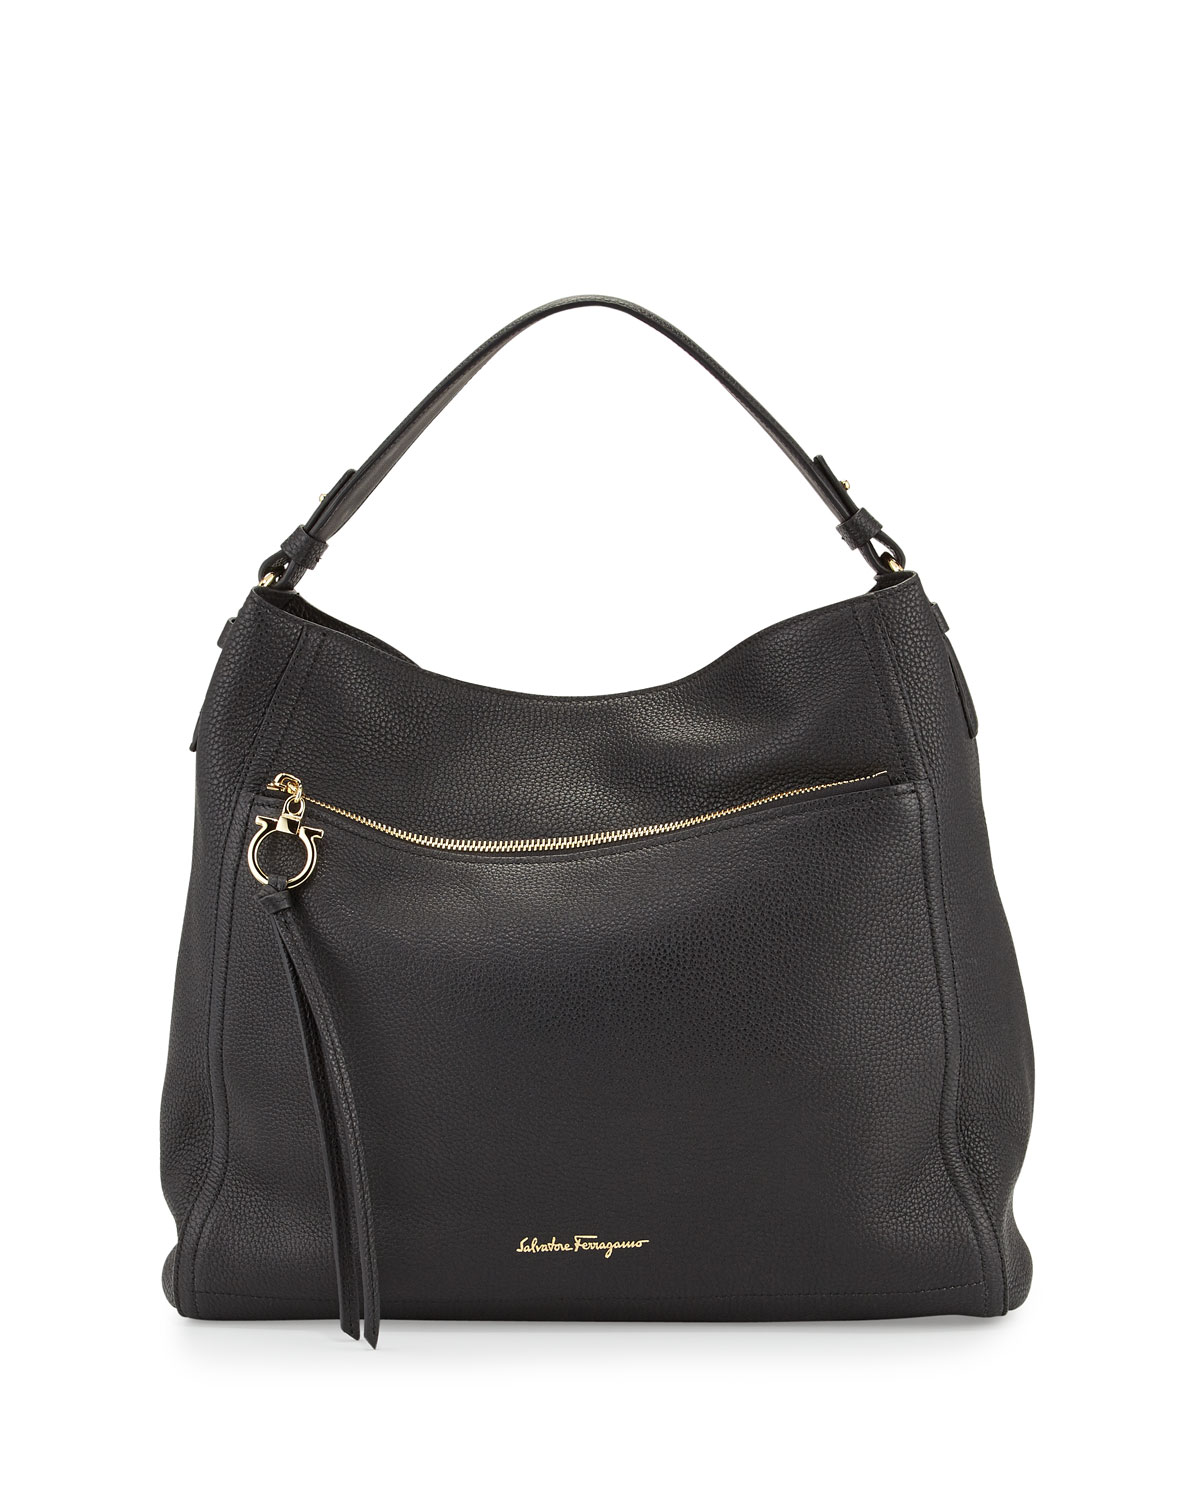 1bbfe85e91 Salvatore FerragamoLeather Hobo Bag